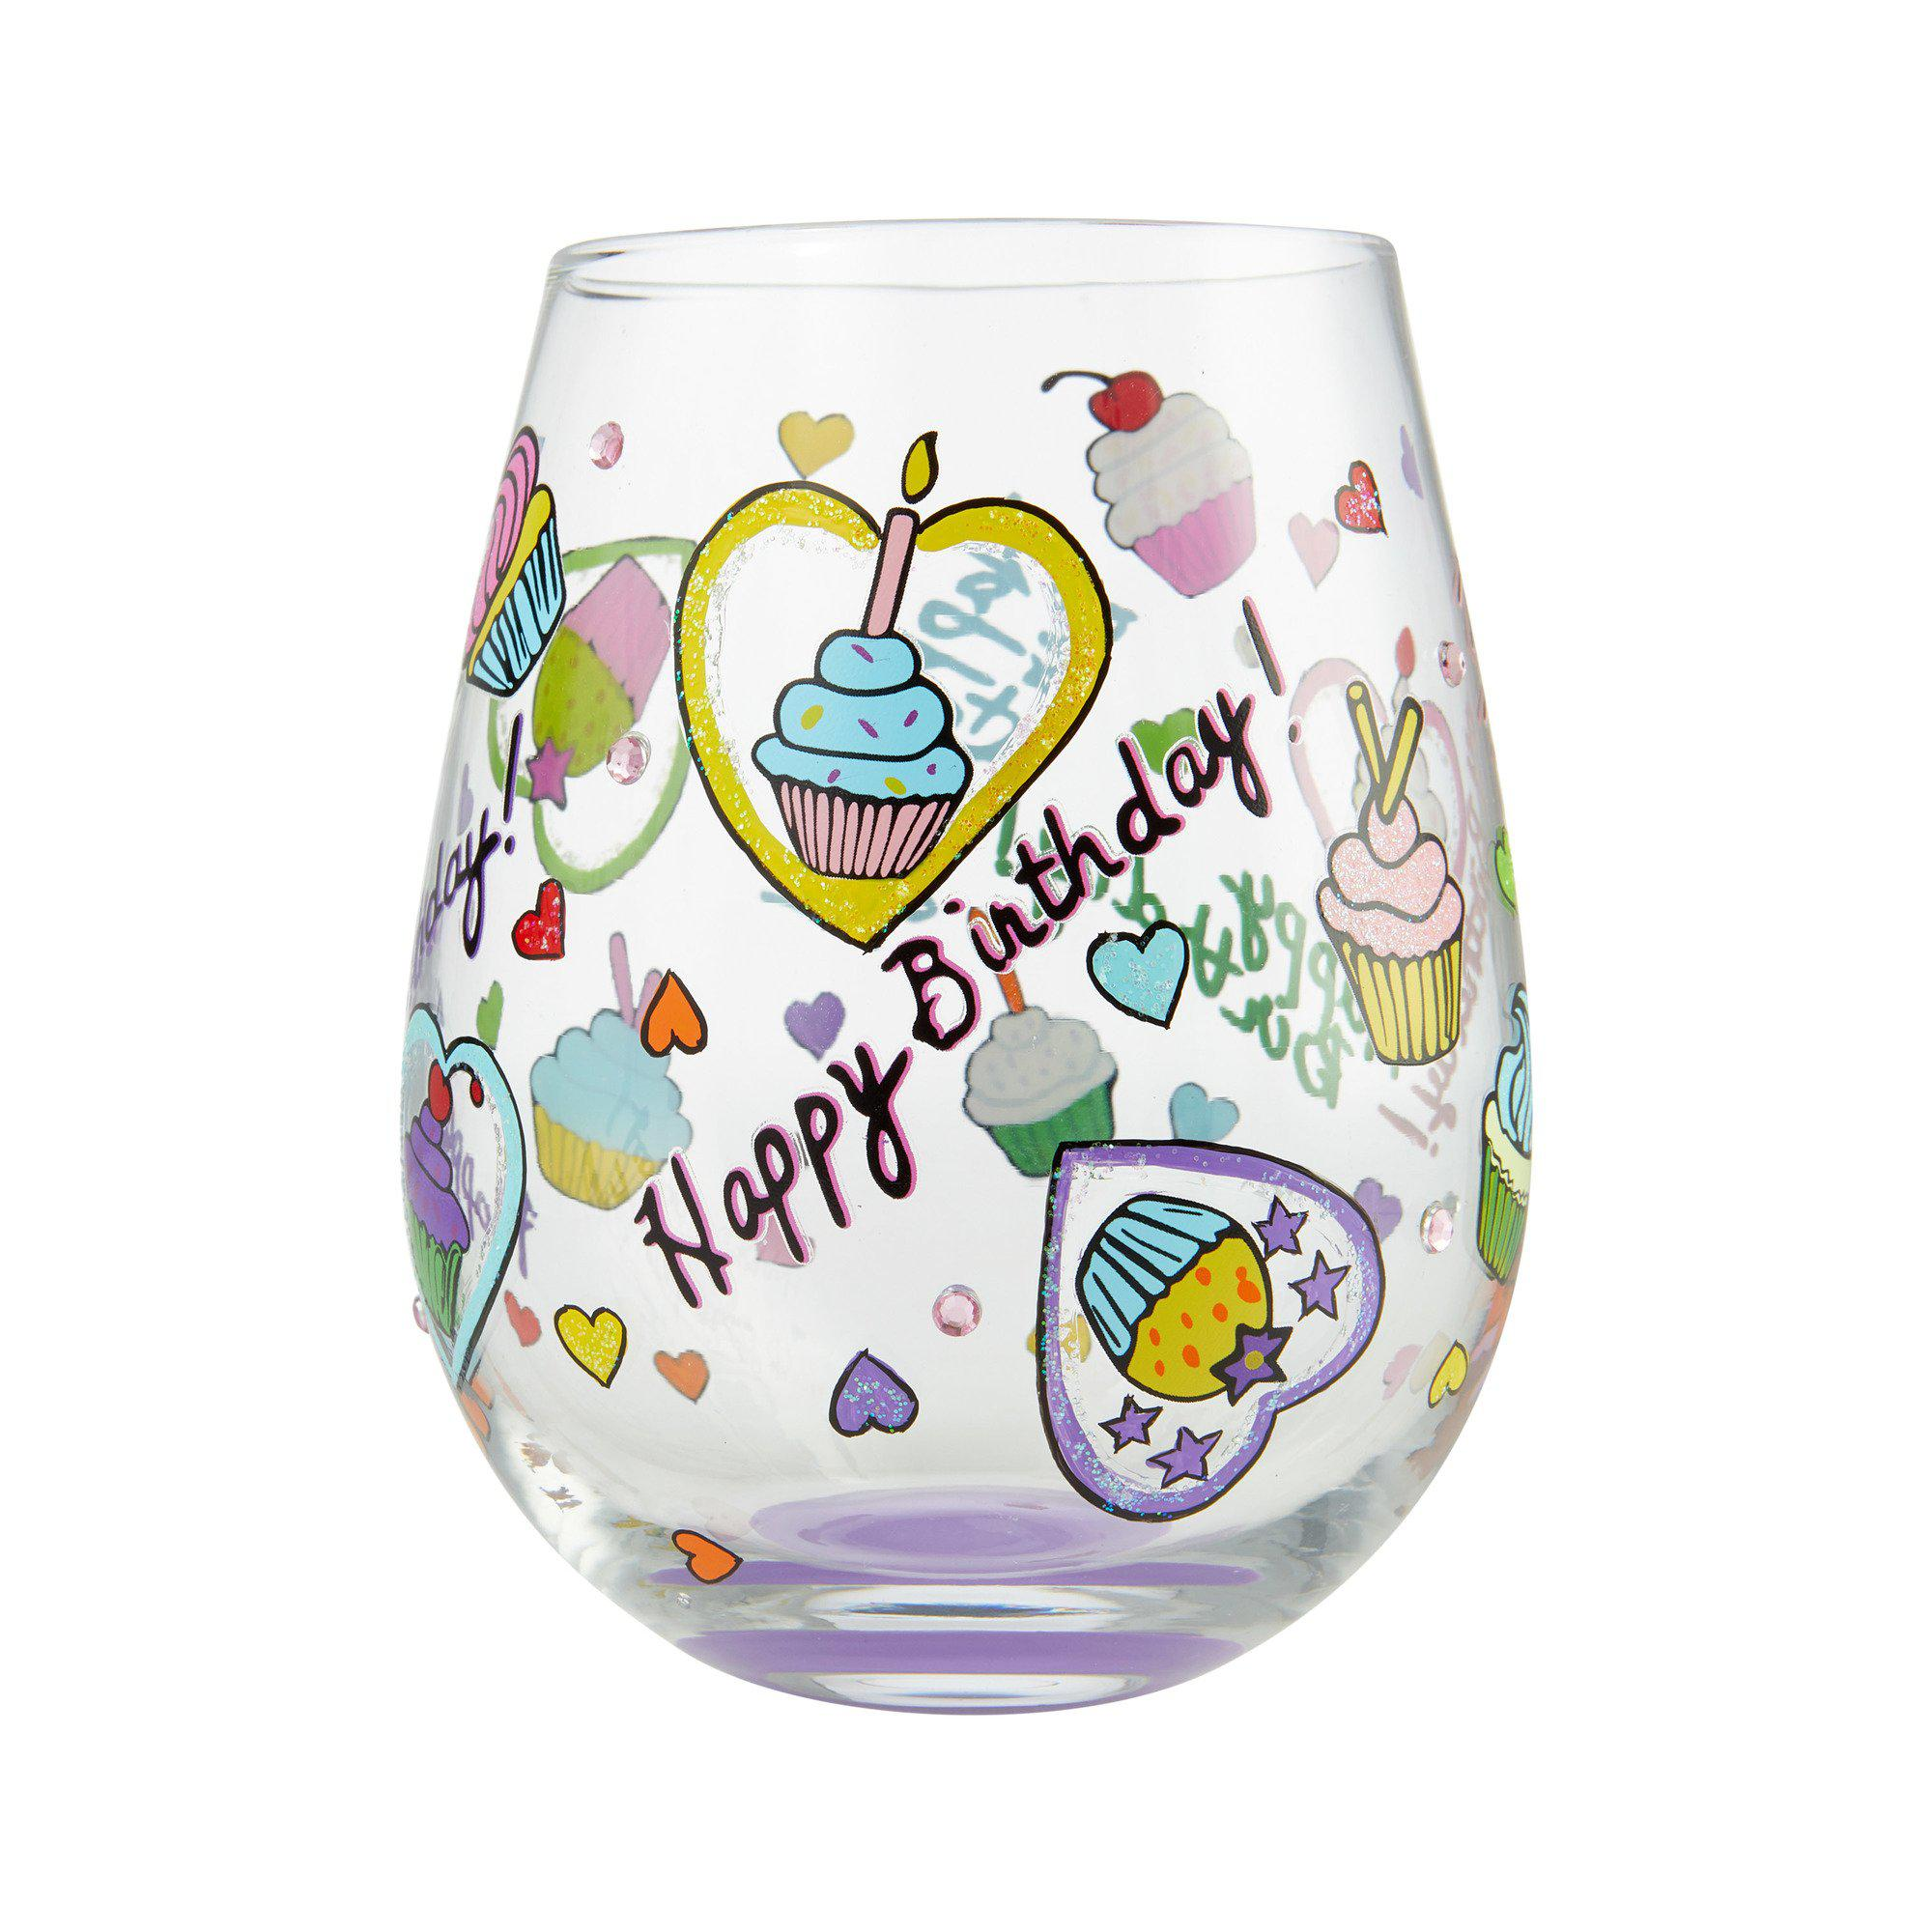 Birthday Cupcakes Stemless Wine Glass by Lolita®-Stemless Wine Glass-Designs by Lolita® (Enesco)-Top Notch Gift Shop